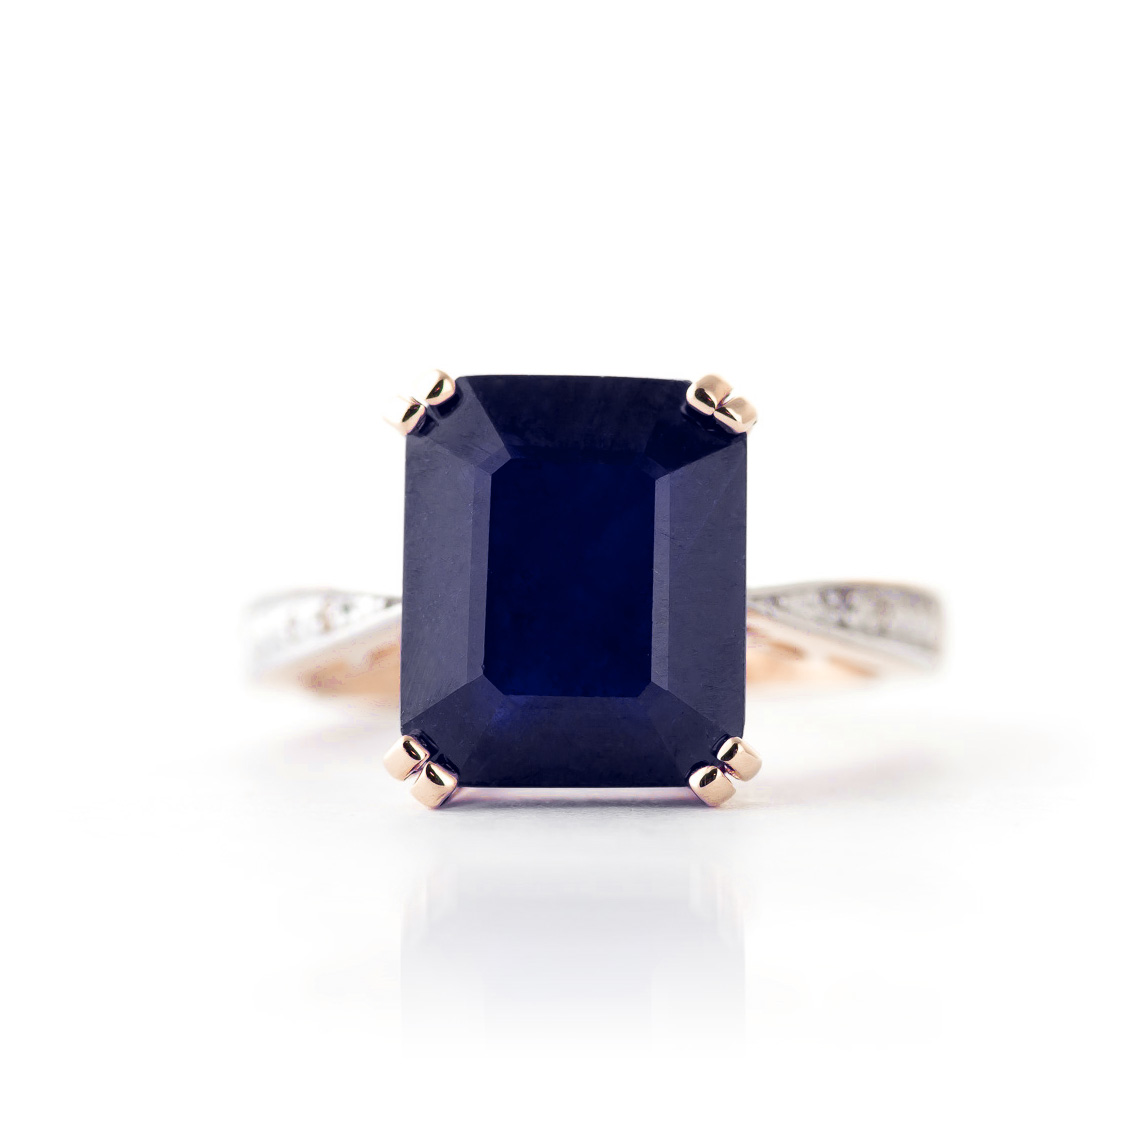 Octagon Cut Sapphire Ring 7.27 ctw in 9ct Rose Gold